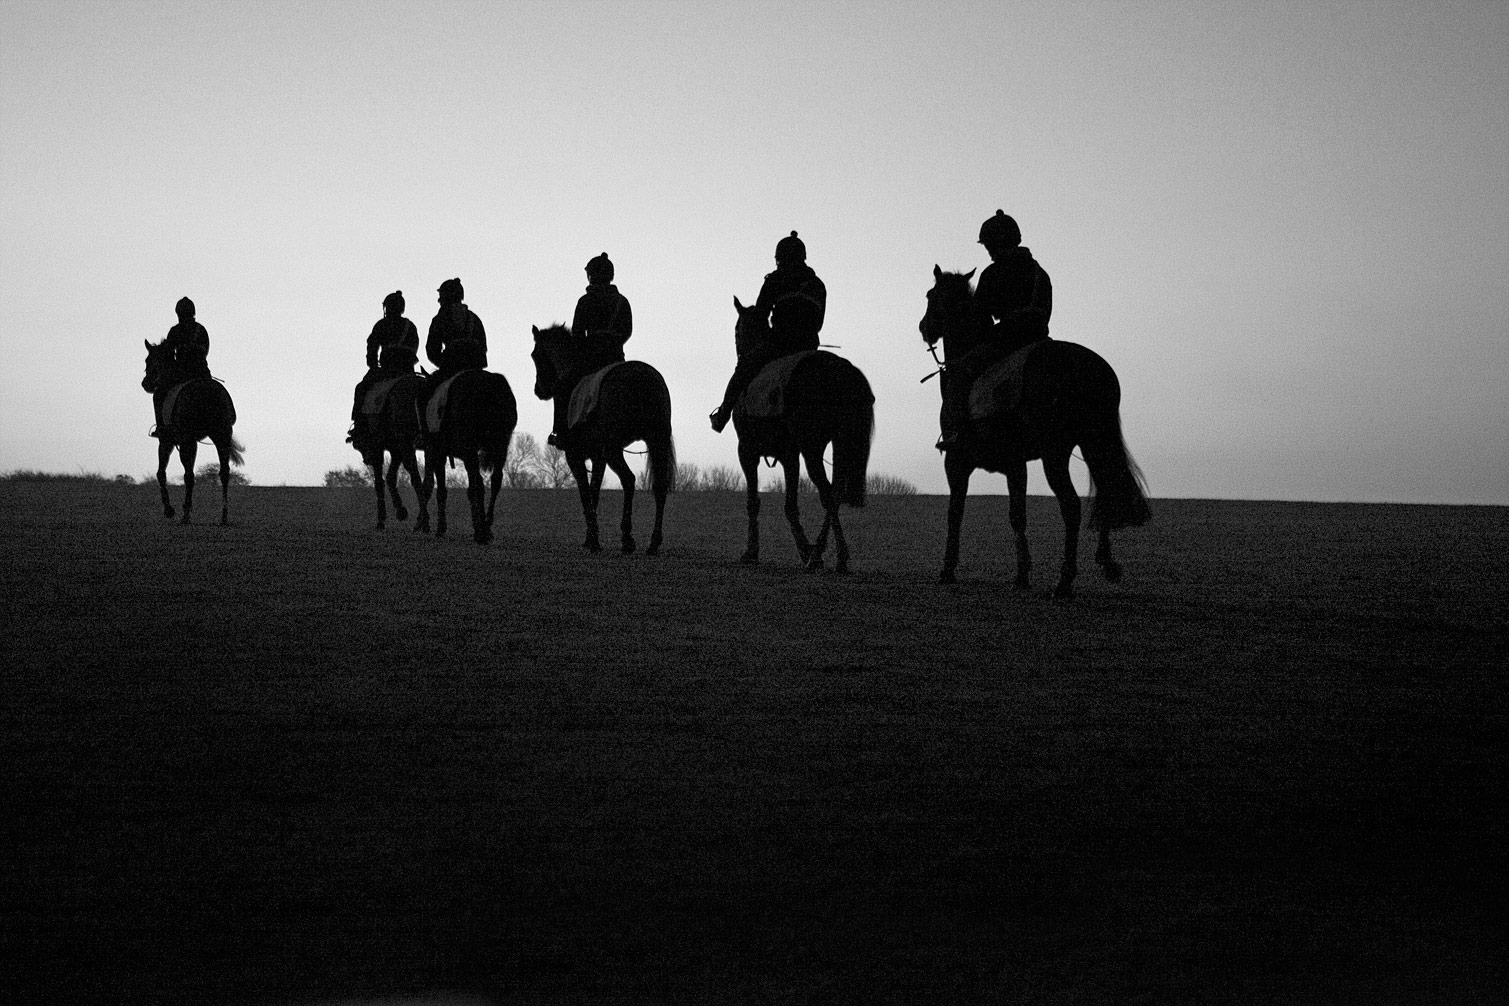 Riders-and-horse-against-the-dawn-sky-B_W